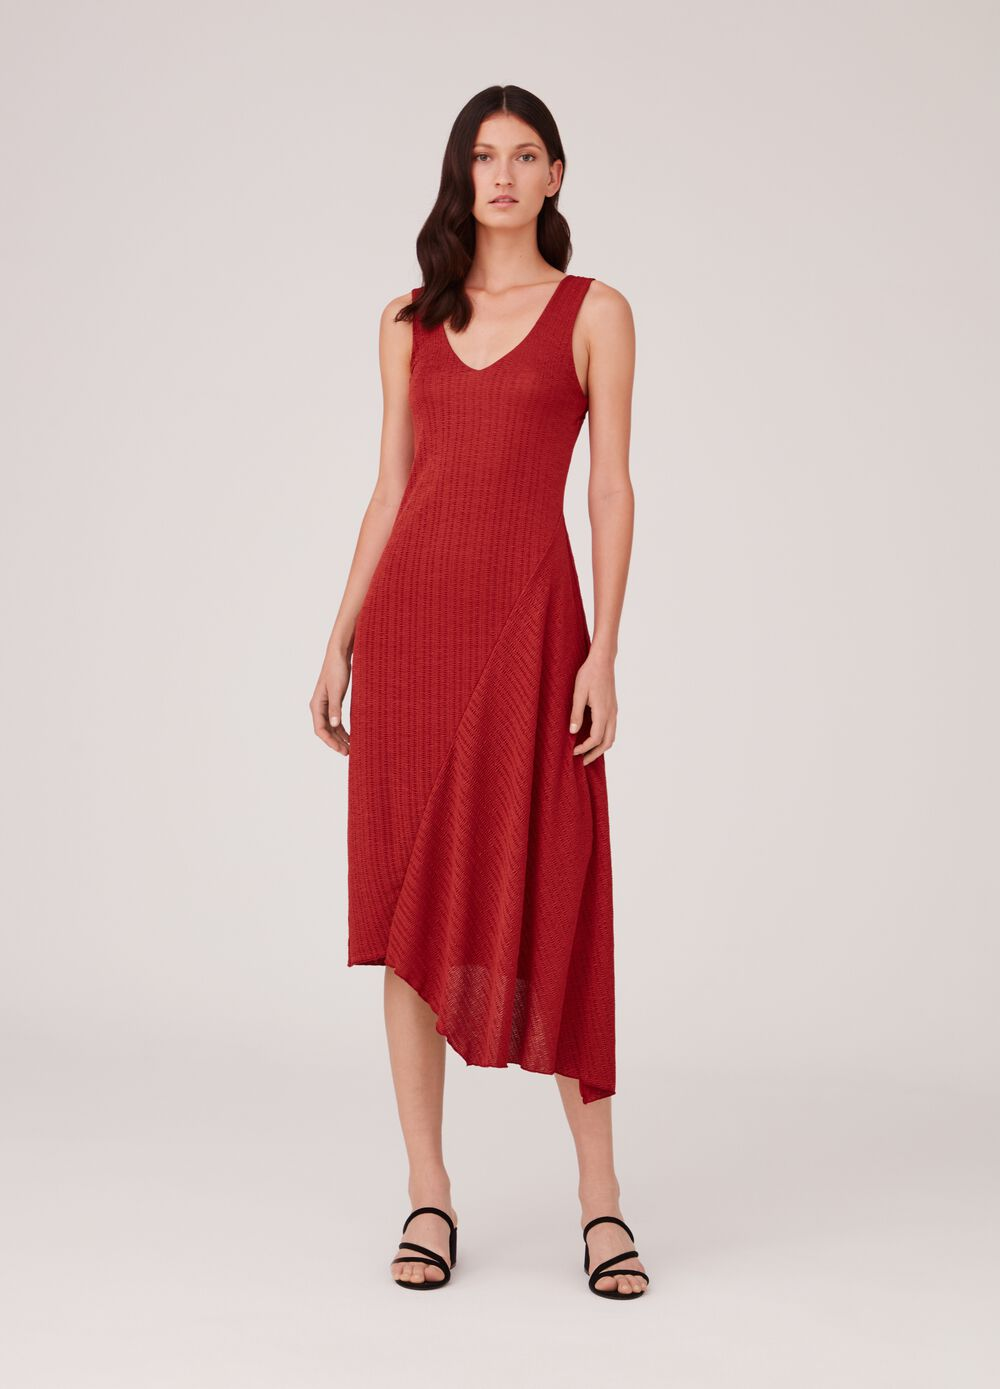 Asymmetric dress with striped weave and V-neck